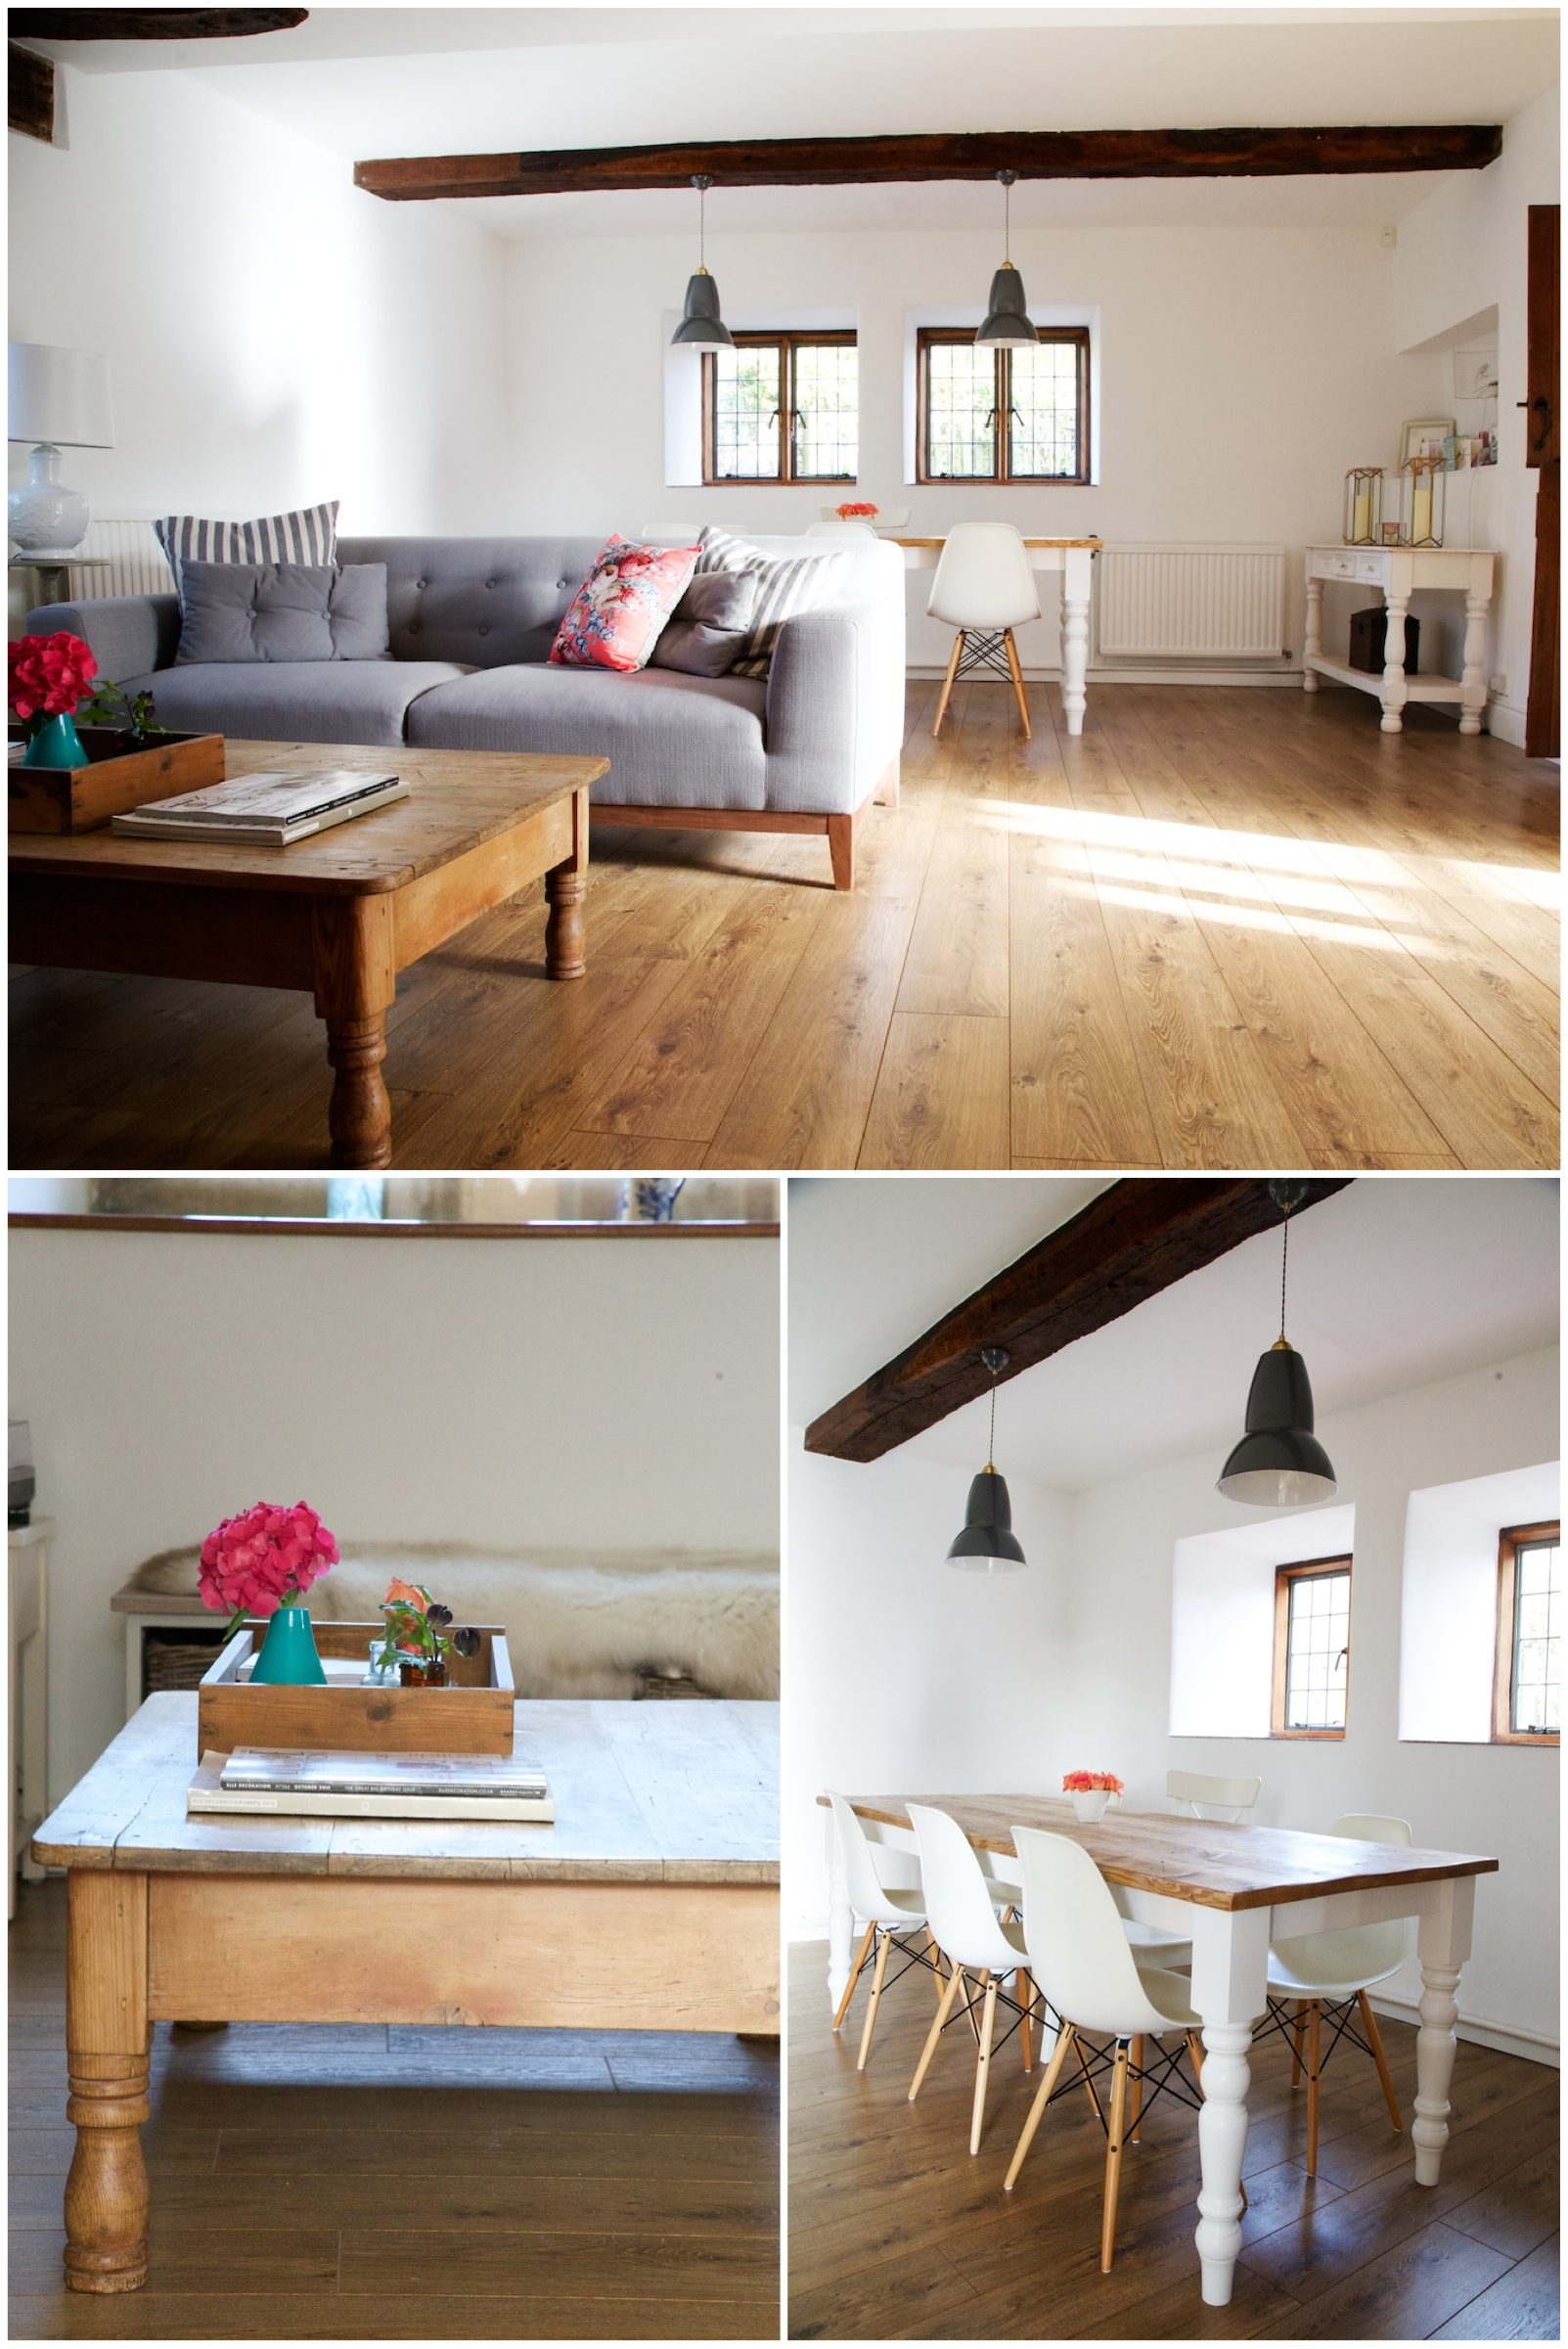 Living space after